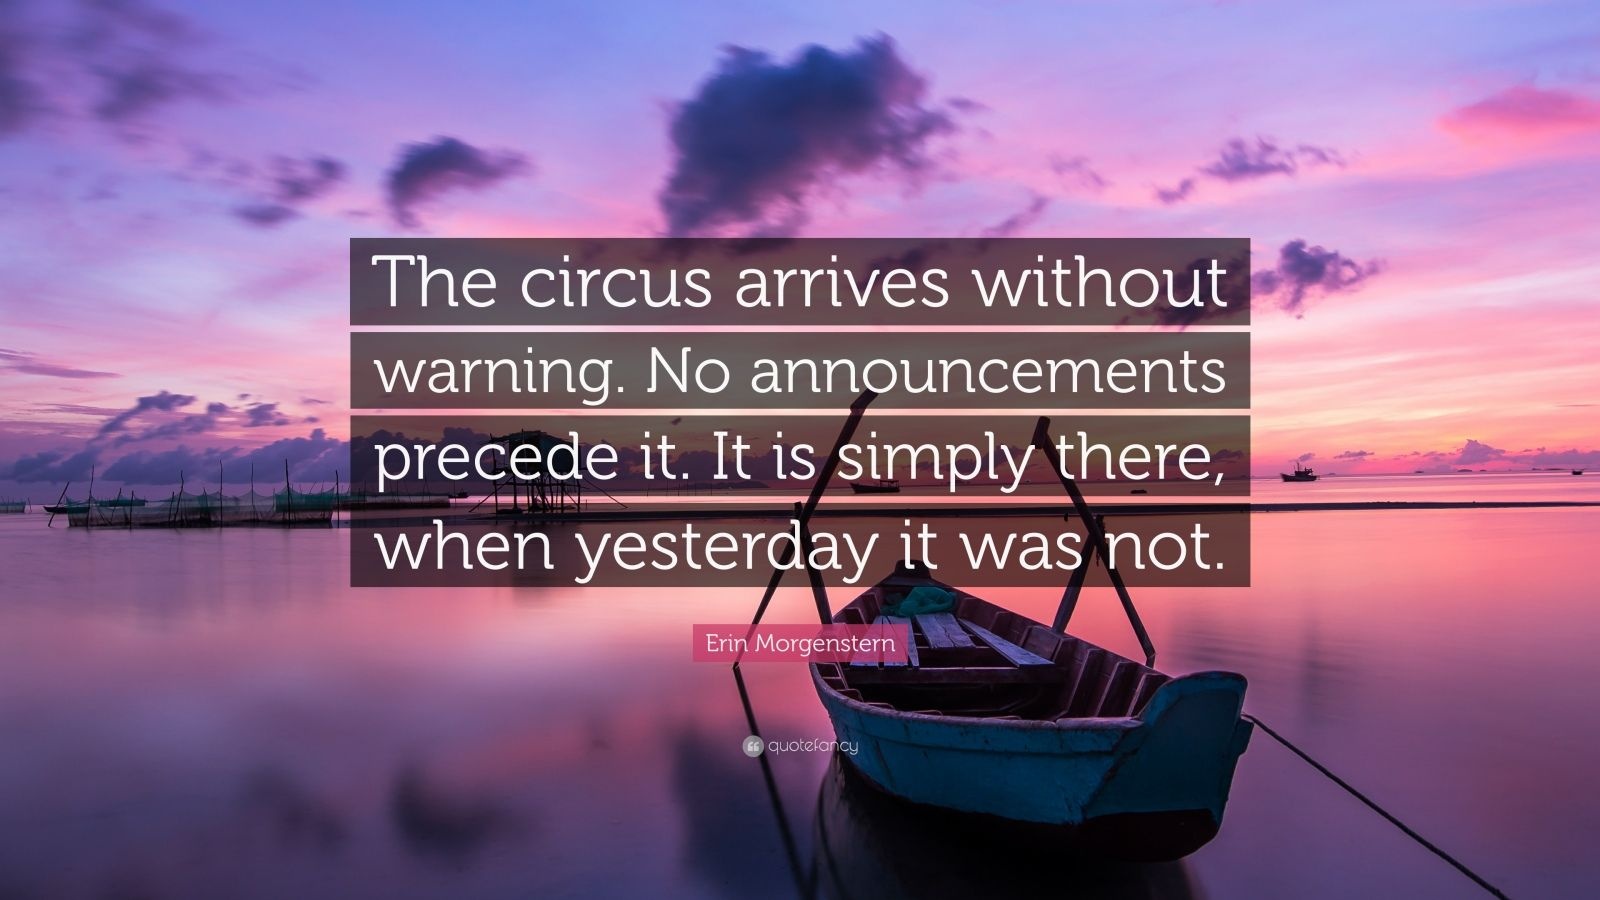 """Erin Morgenstern Quote: """"The circus arrives without warning. No announcements precede it. It is simply there, when yesterday it was not."""""""